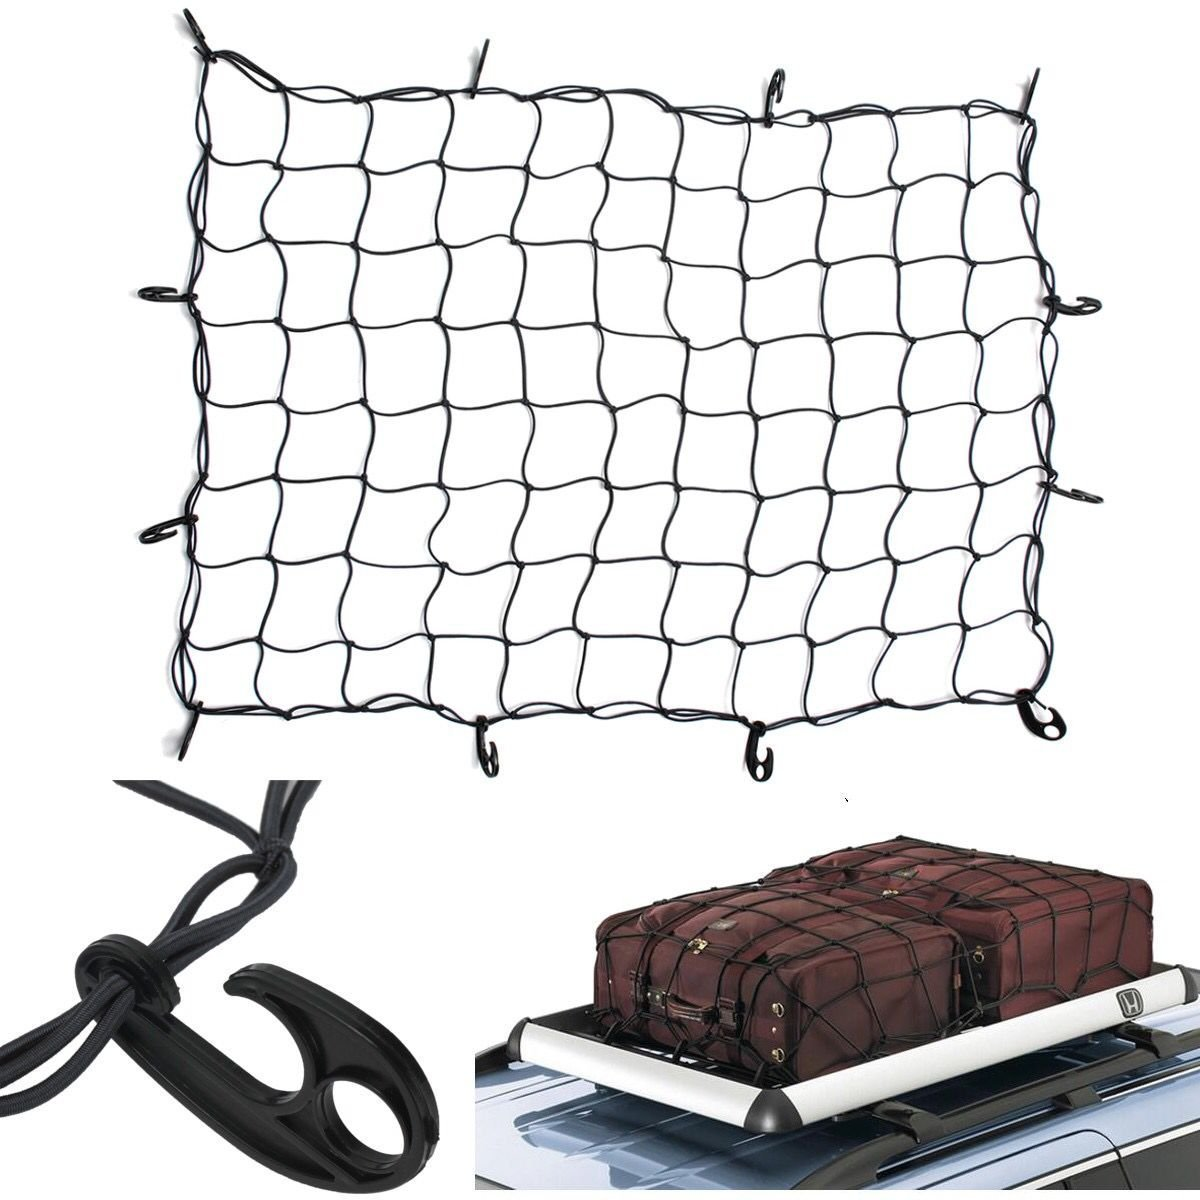 Tebery Cargo Net with 12 Hooks Elasticated Bungee Cargo Net Auto Roof Tie-Down Net Heavy Duty Truck Bed Net (47' x 36')